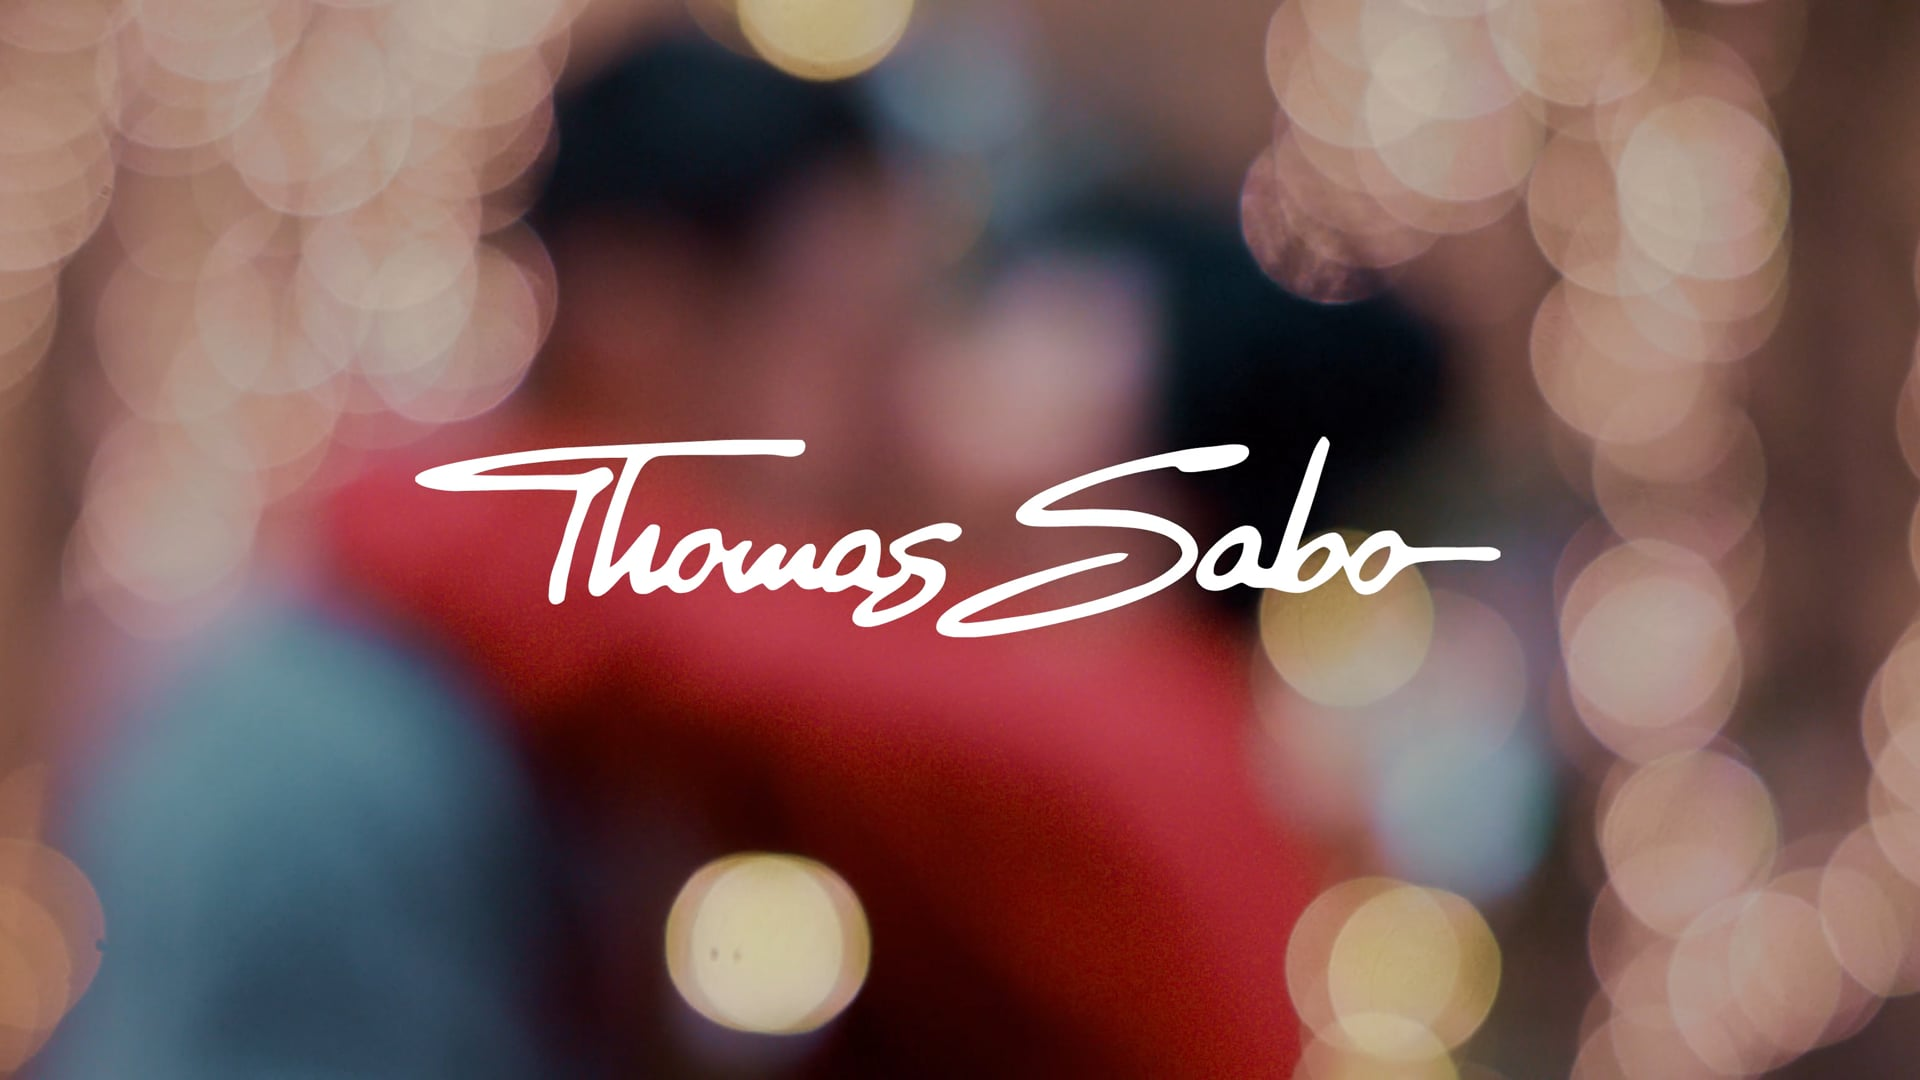 Be in Time, Thomas Sabo Christmas Commercial